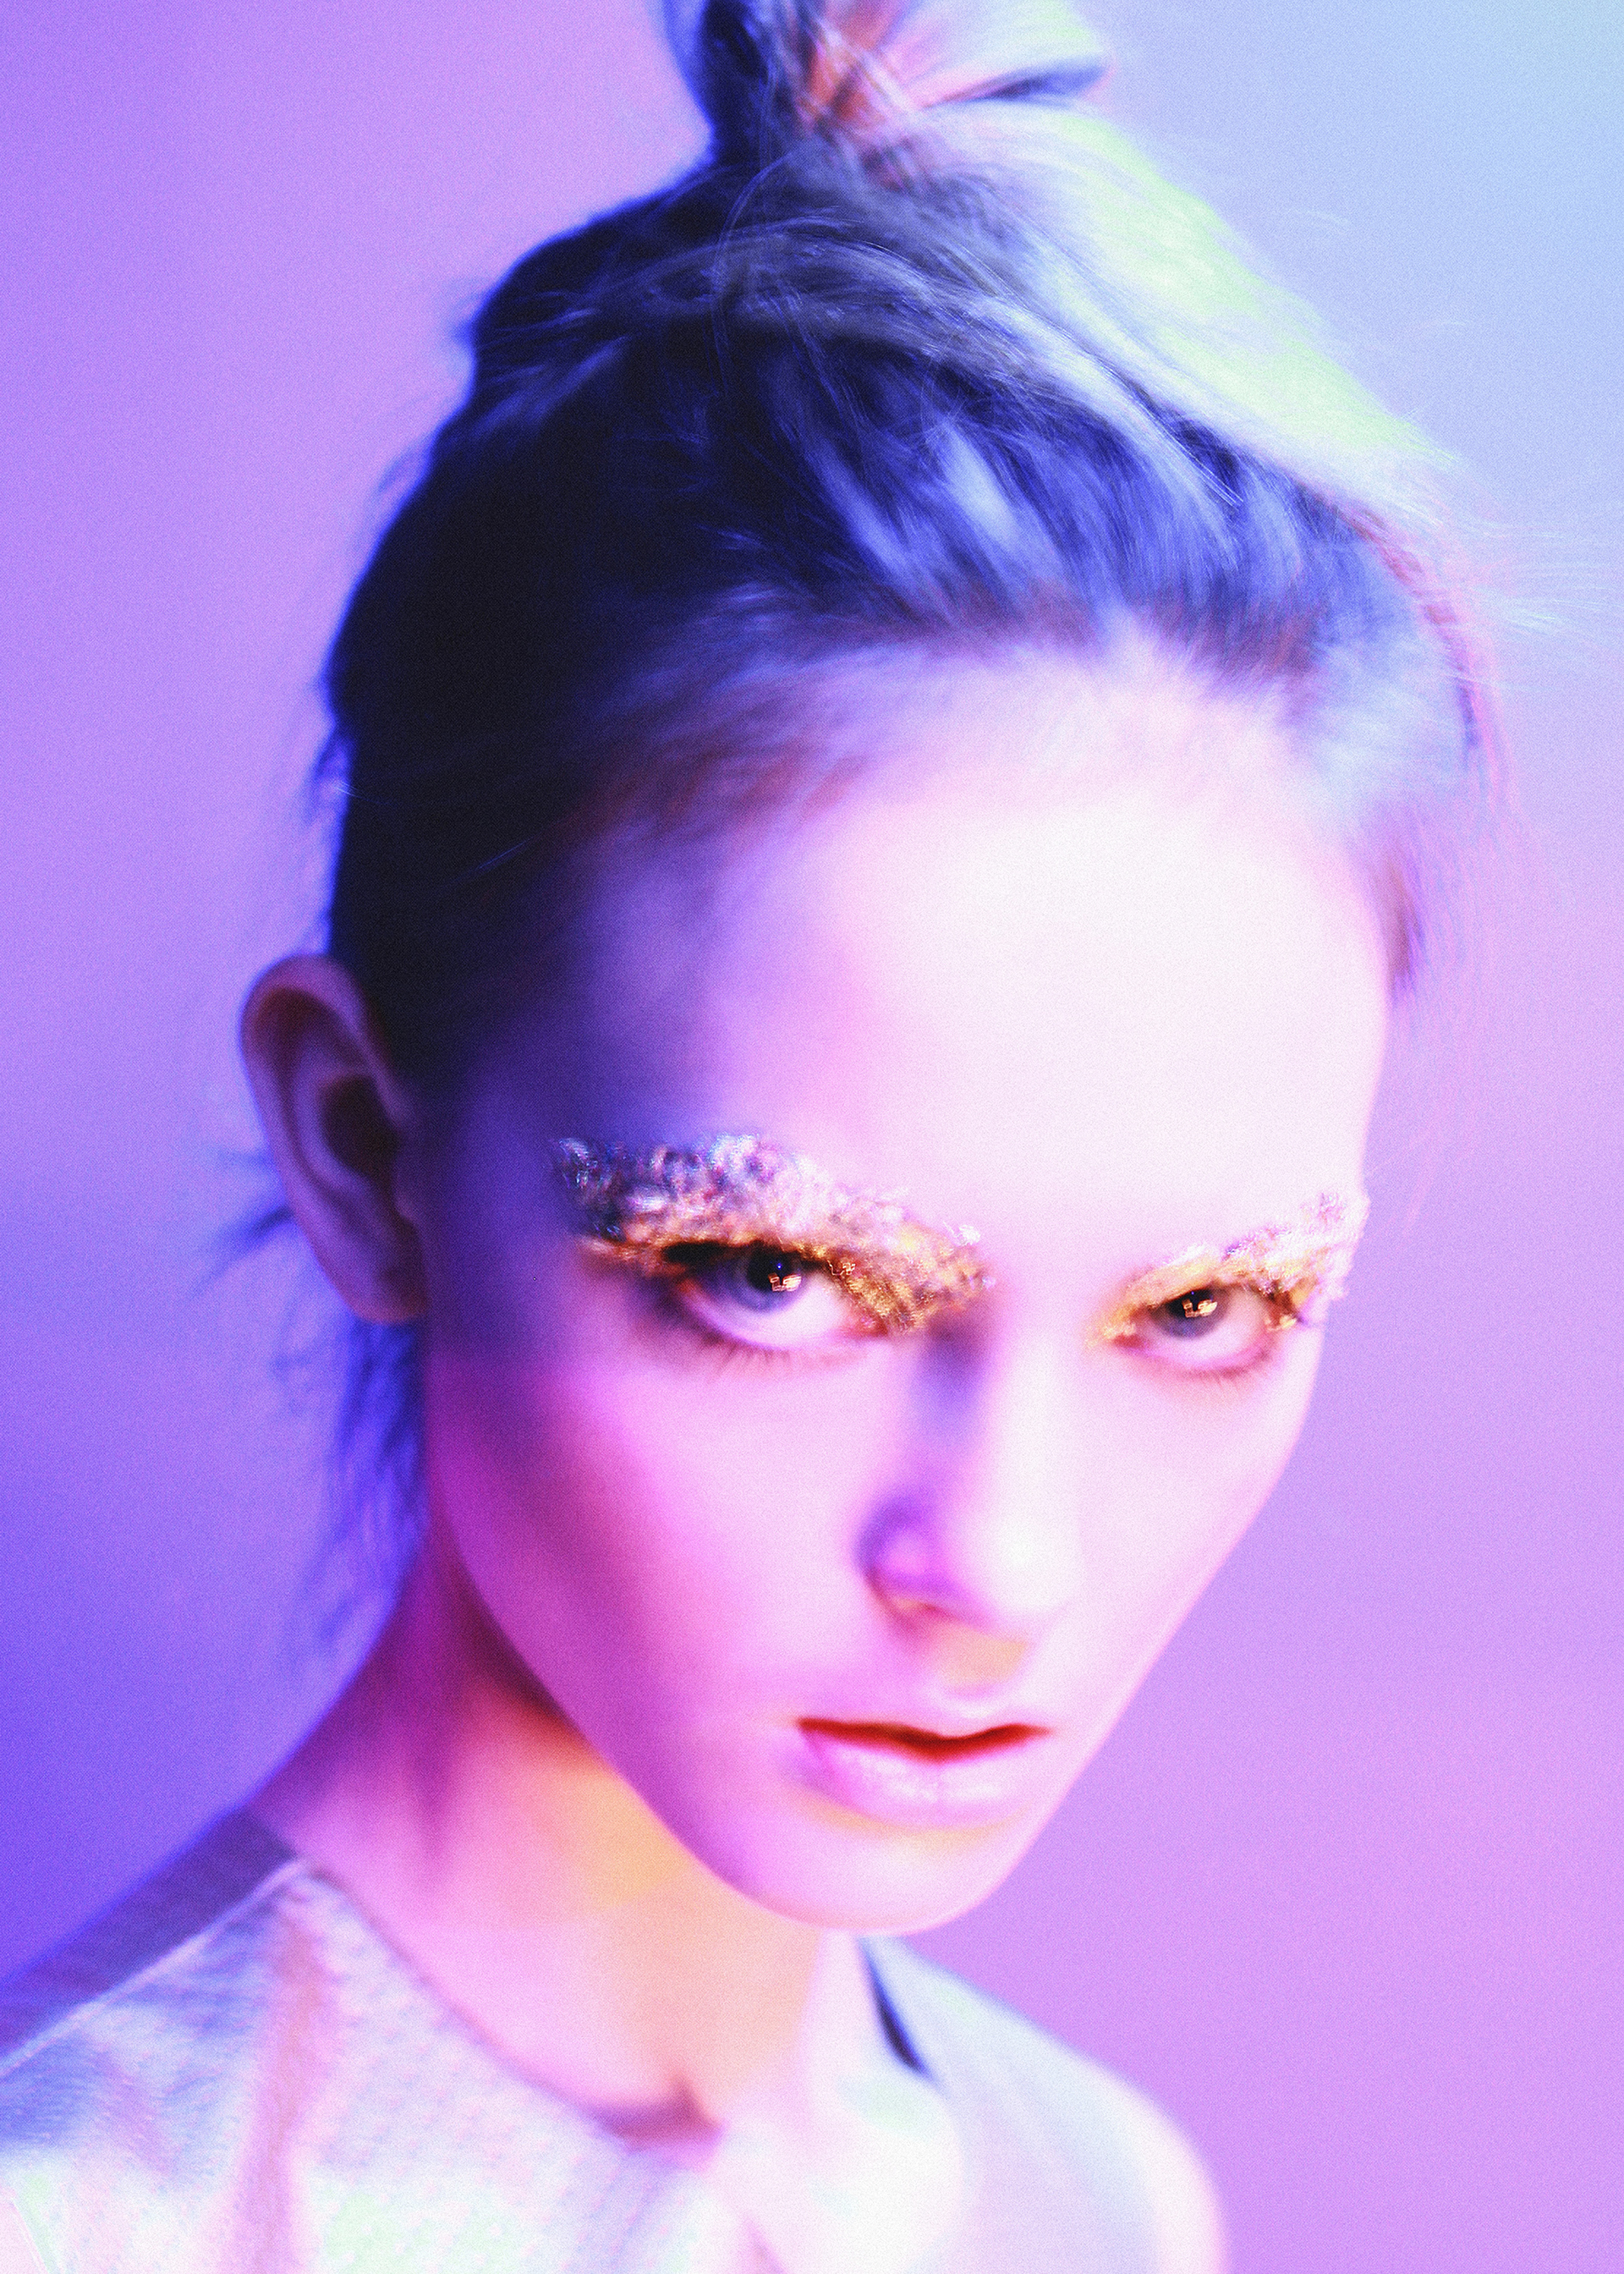 Bambi (Ultra model agency Moscow) on Behance